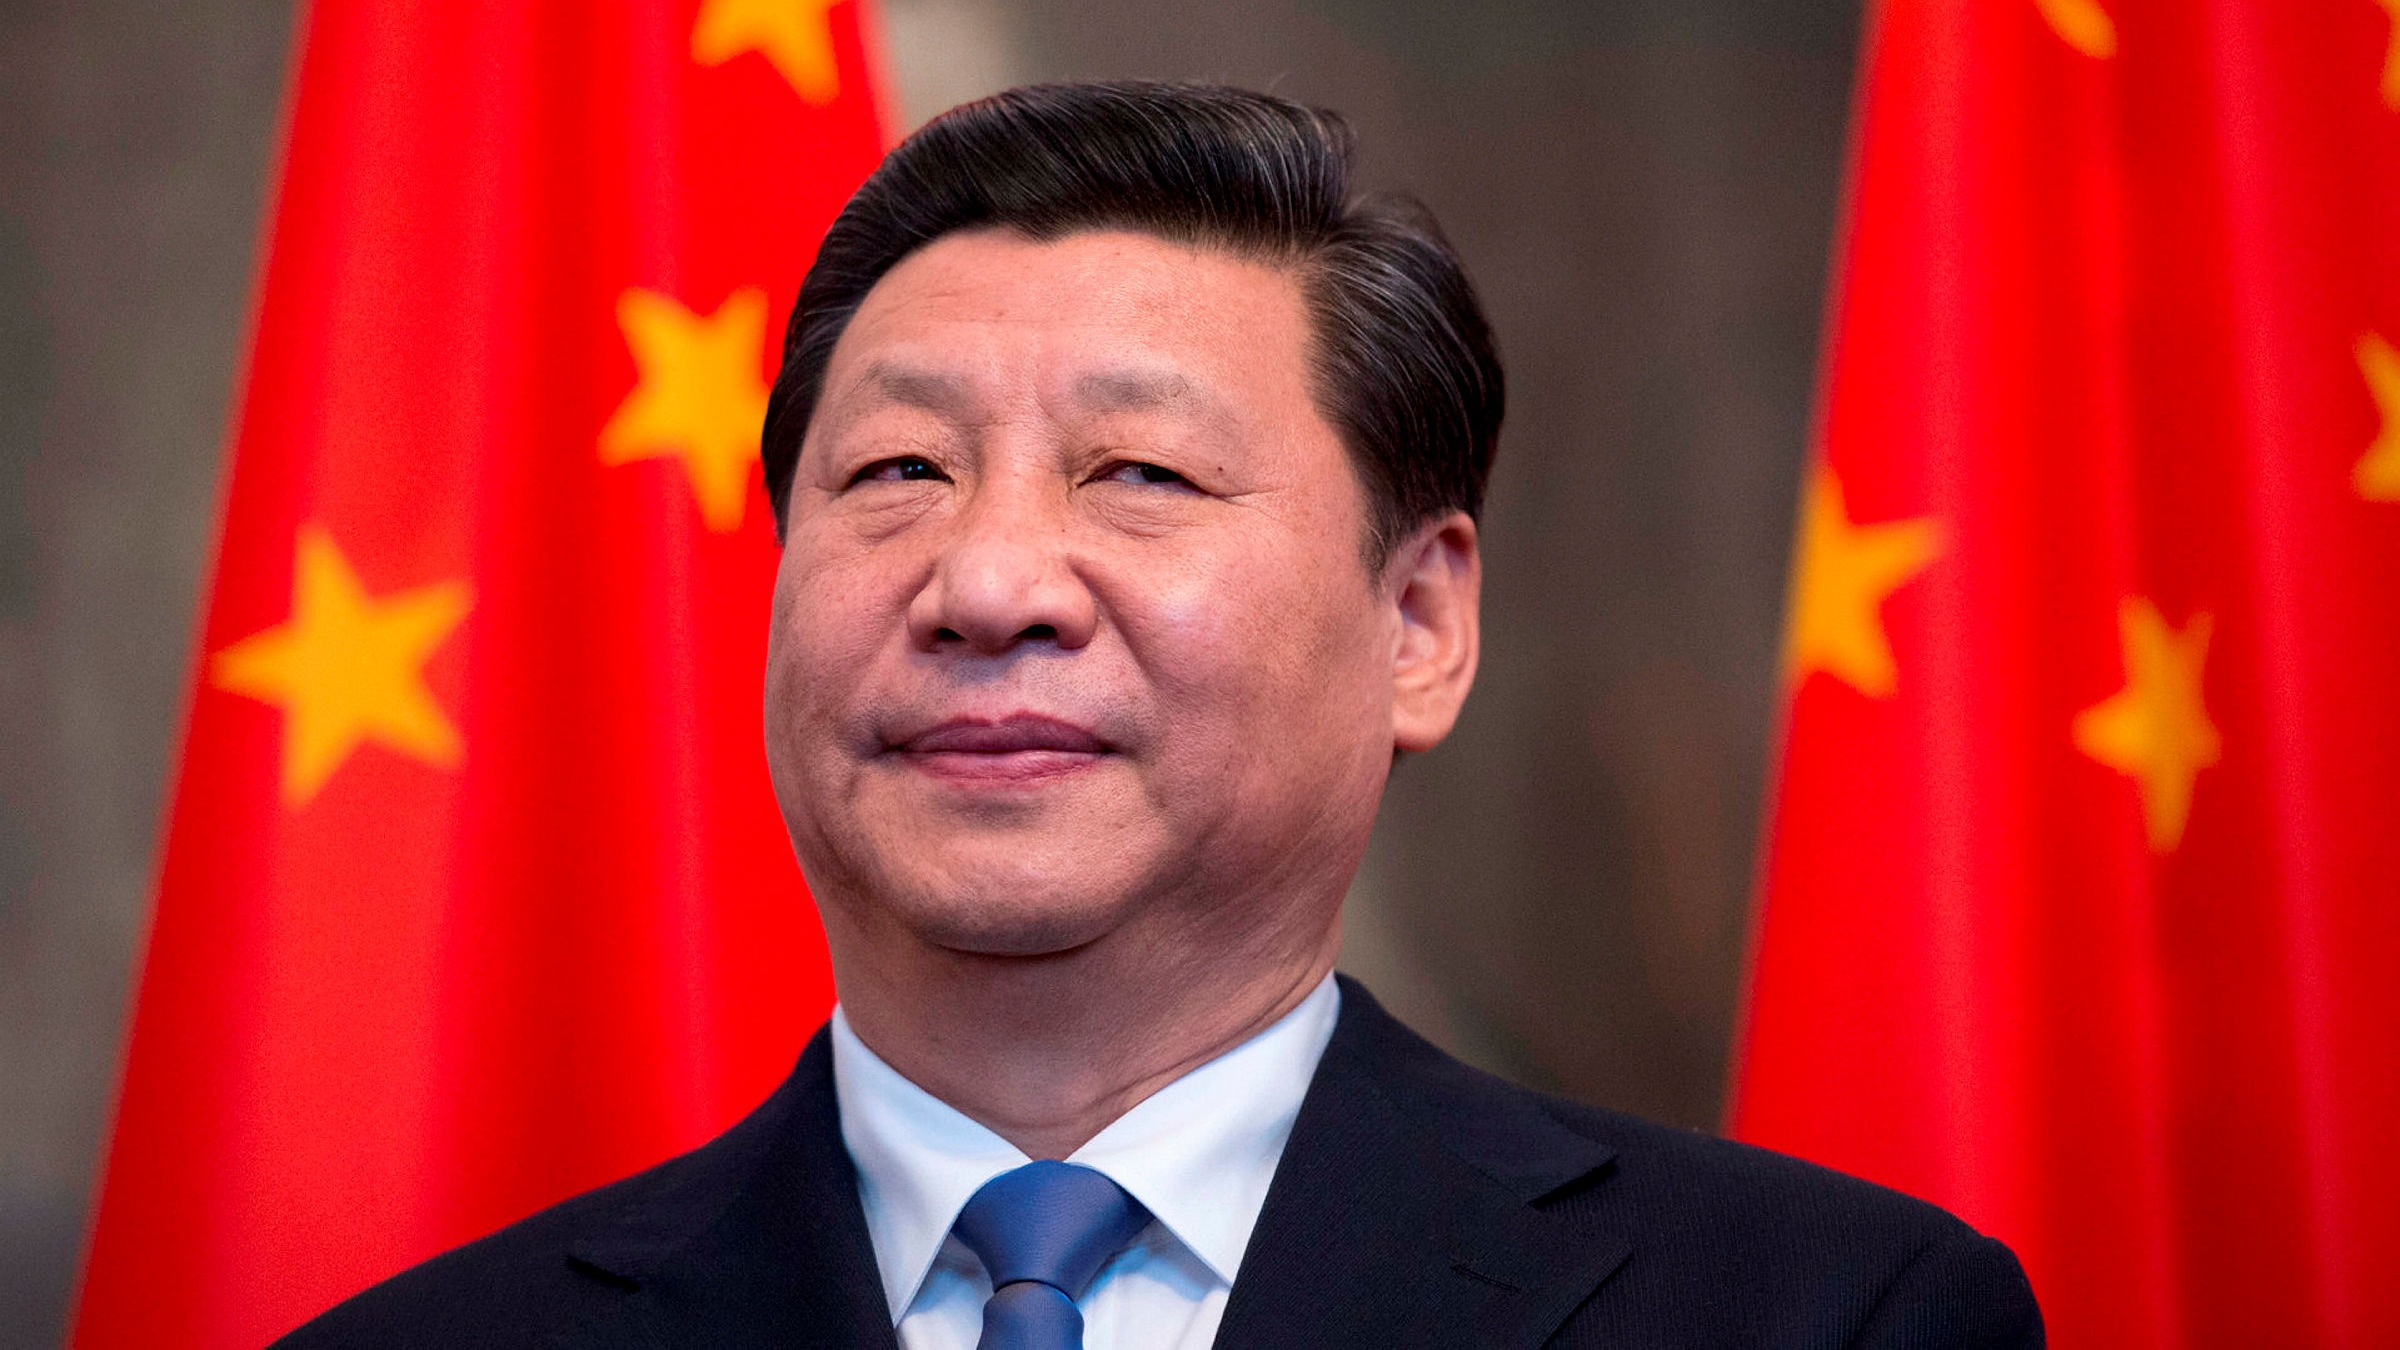 Xi Jinping and the Future of CCP